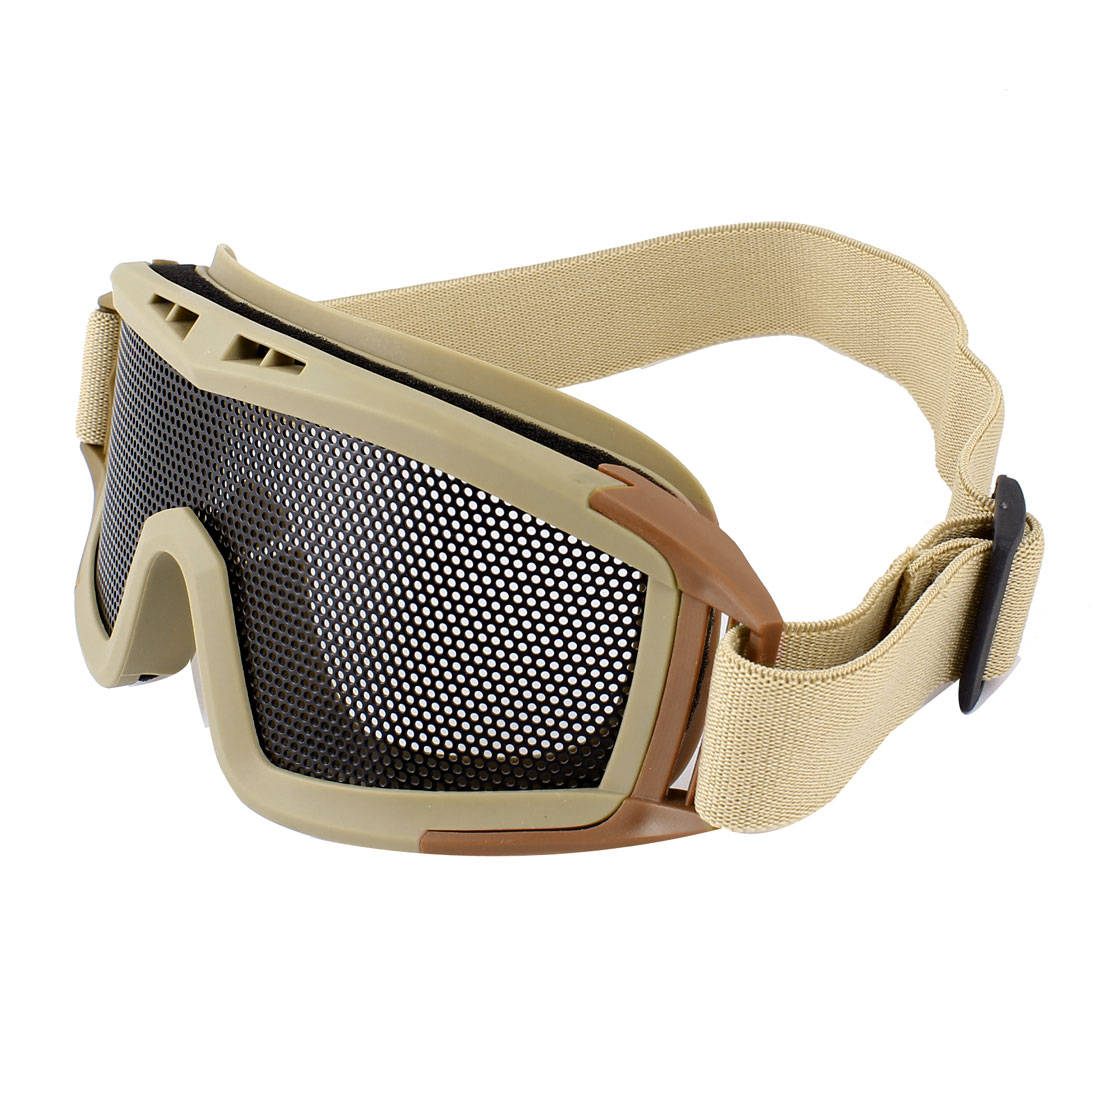 Airsoft Paintball Game Eye Protection Pinhole Metal Meshy Safety Goggles Khaki